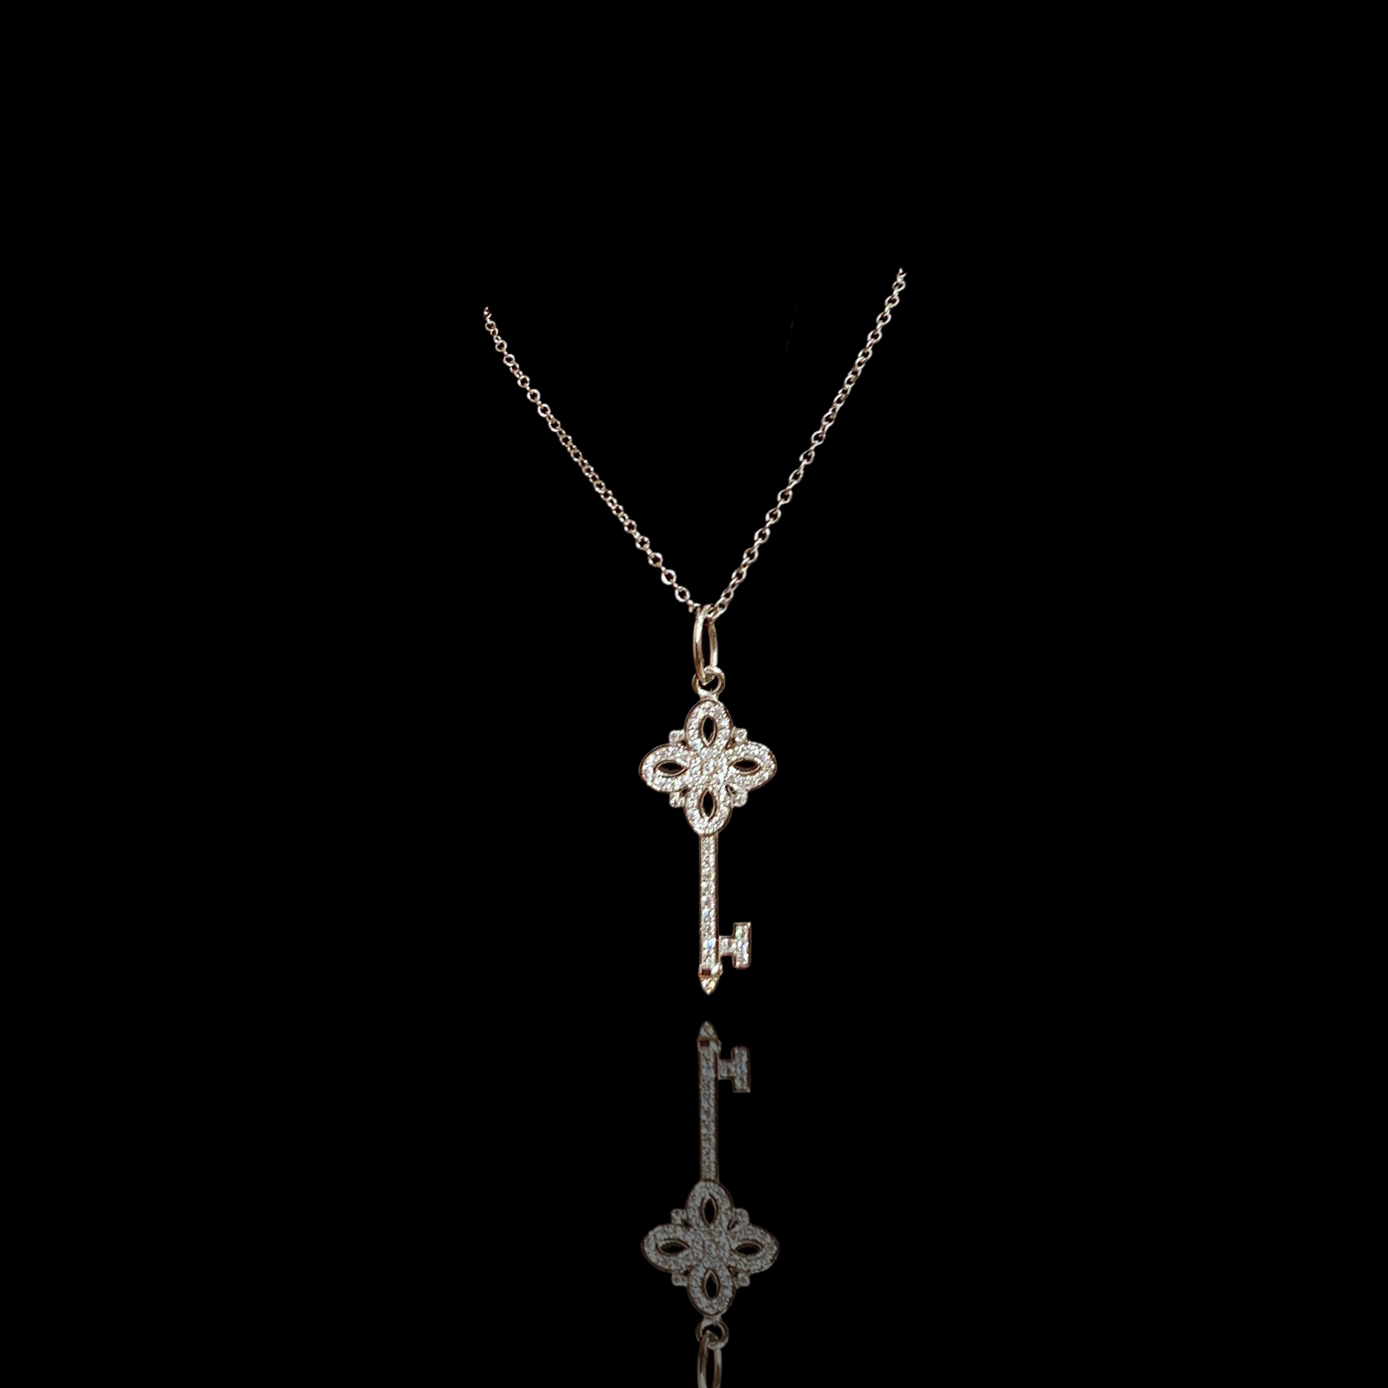 Lot 42 - Tiffany Victoria Key Necklace, Tiffany & Co.